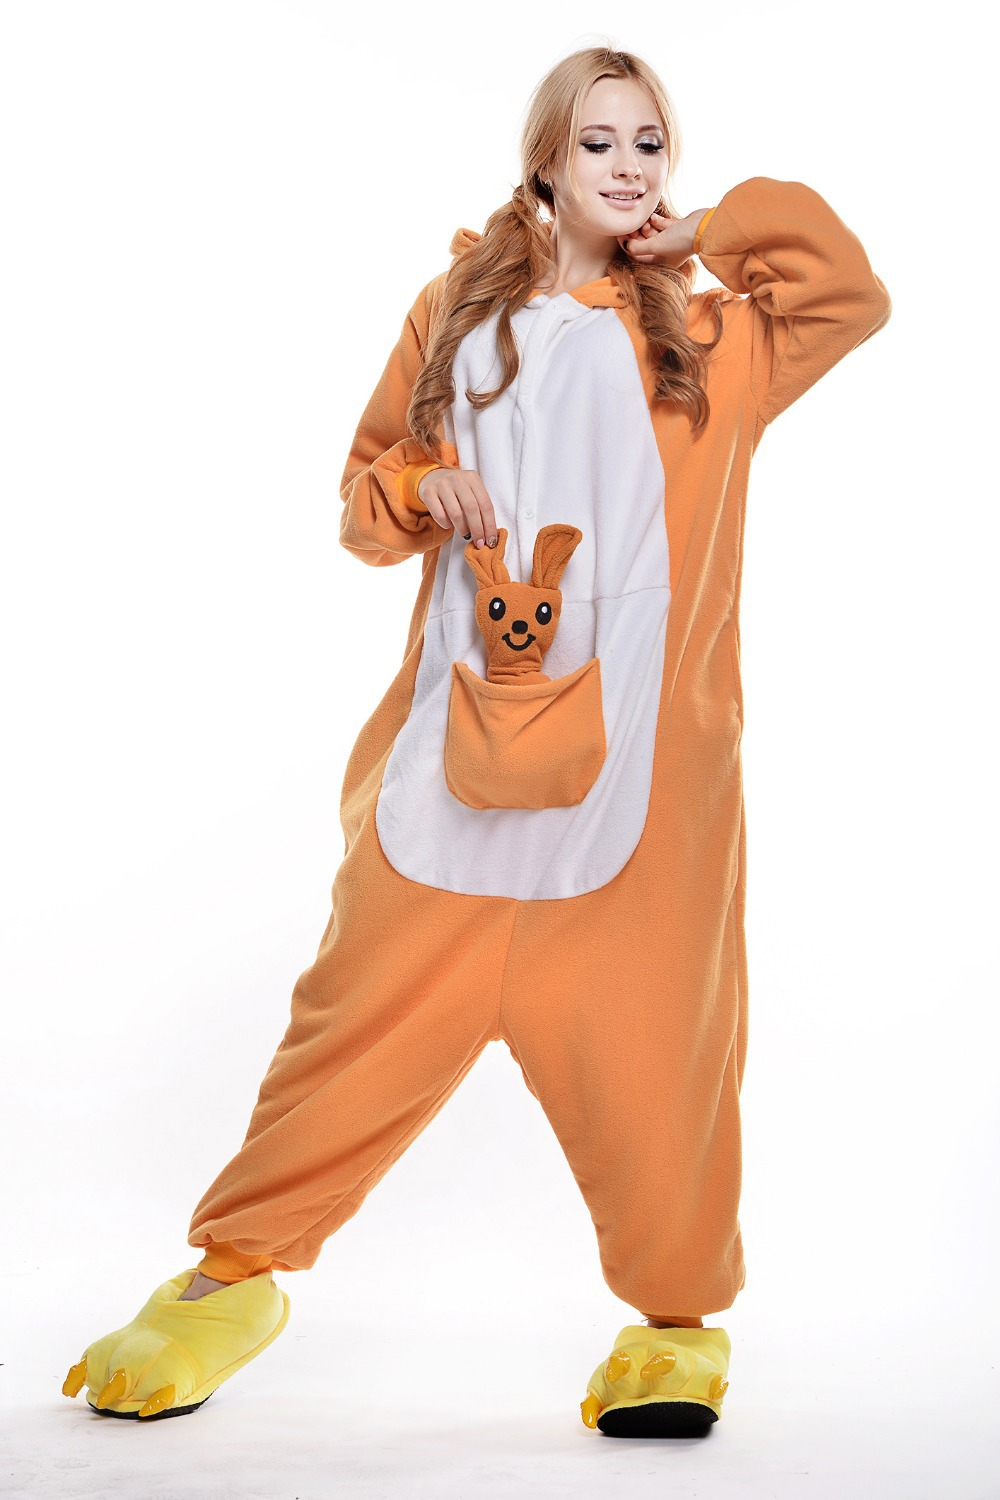 Adult footed pajamas channel days of yesteryear. A great gift for a childhood friend, a grown sibling or even for a parent, footed pajamas are no longer just for kids. Sleep tight tonight, in a pair of adult footed pajamas, by shopping the selection of PJs at Macy's, today.